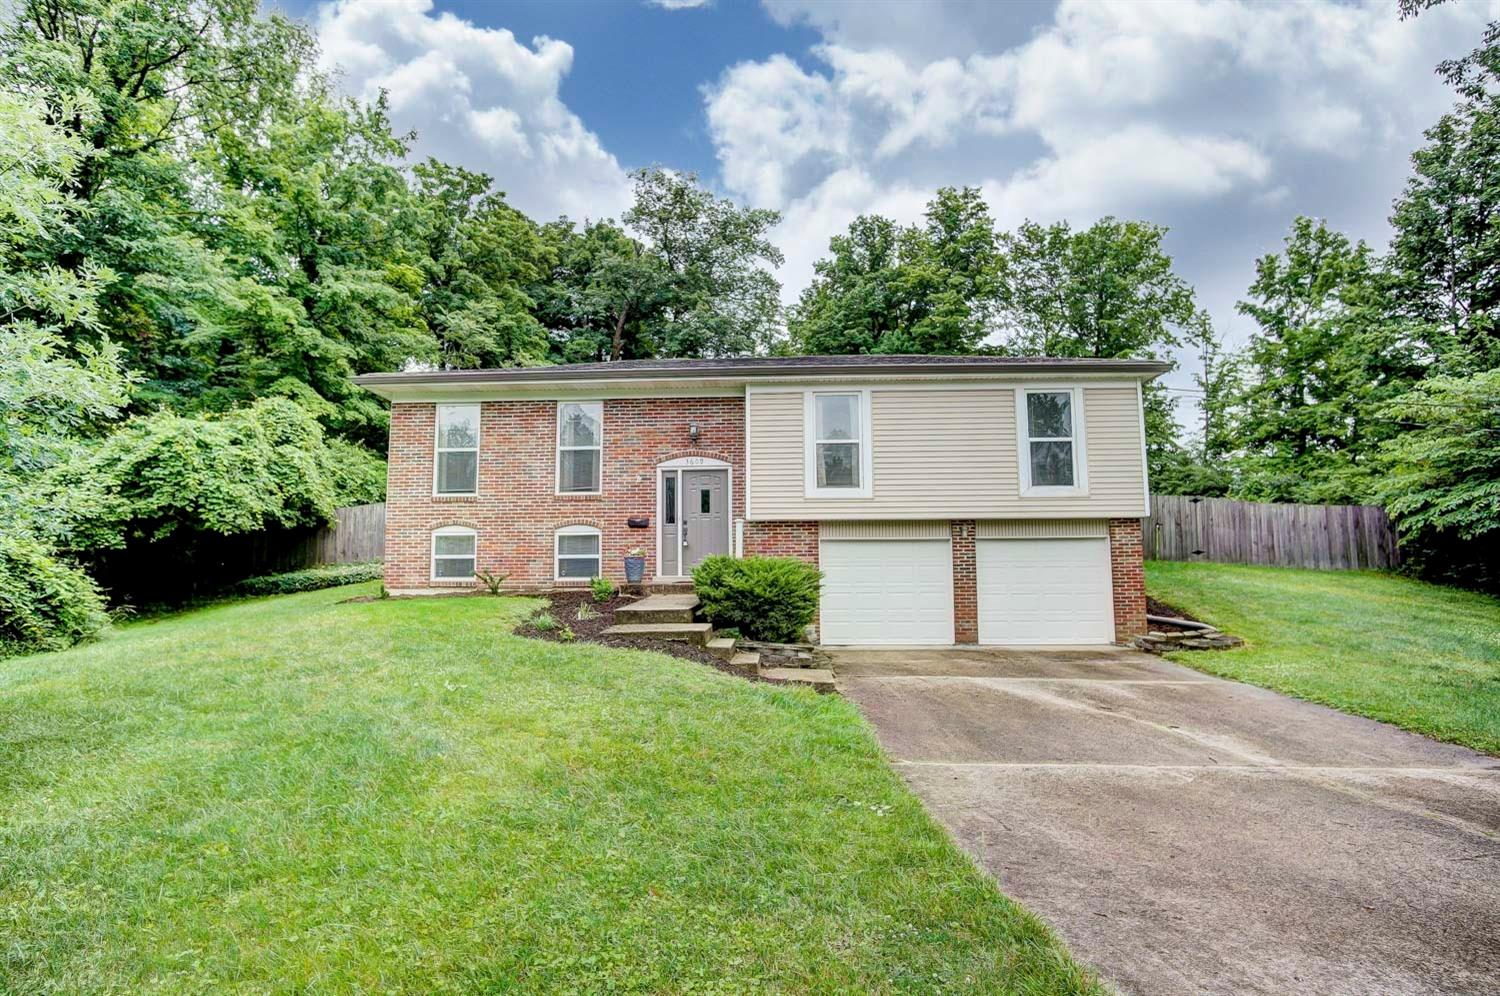 3609 Congreve Ave Kennedy Hts., OH